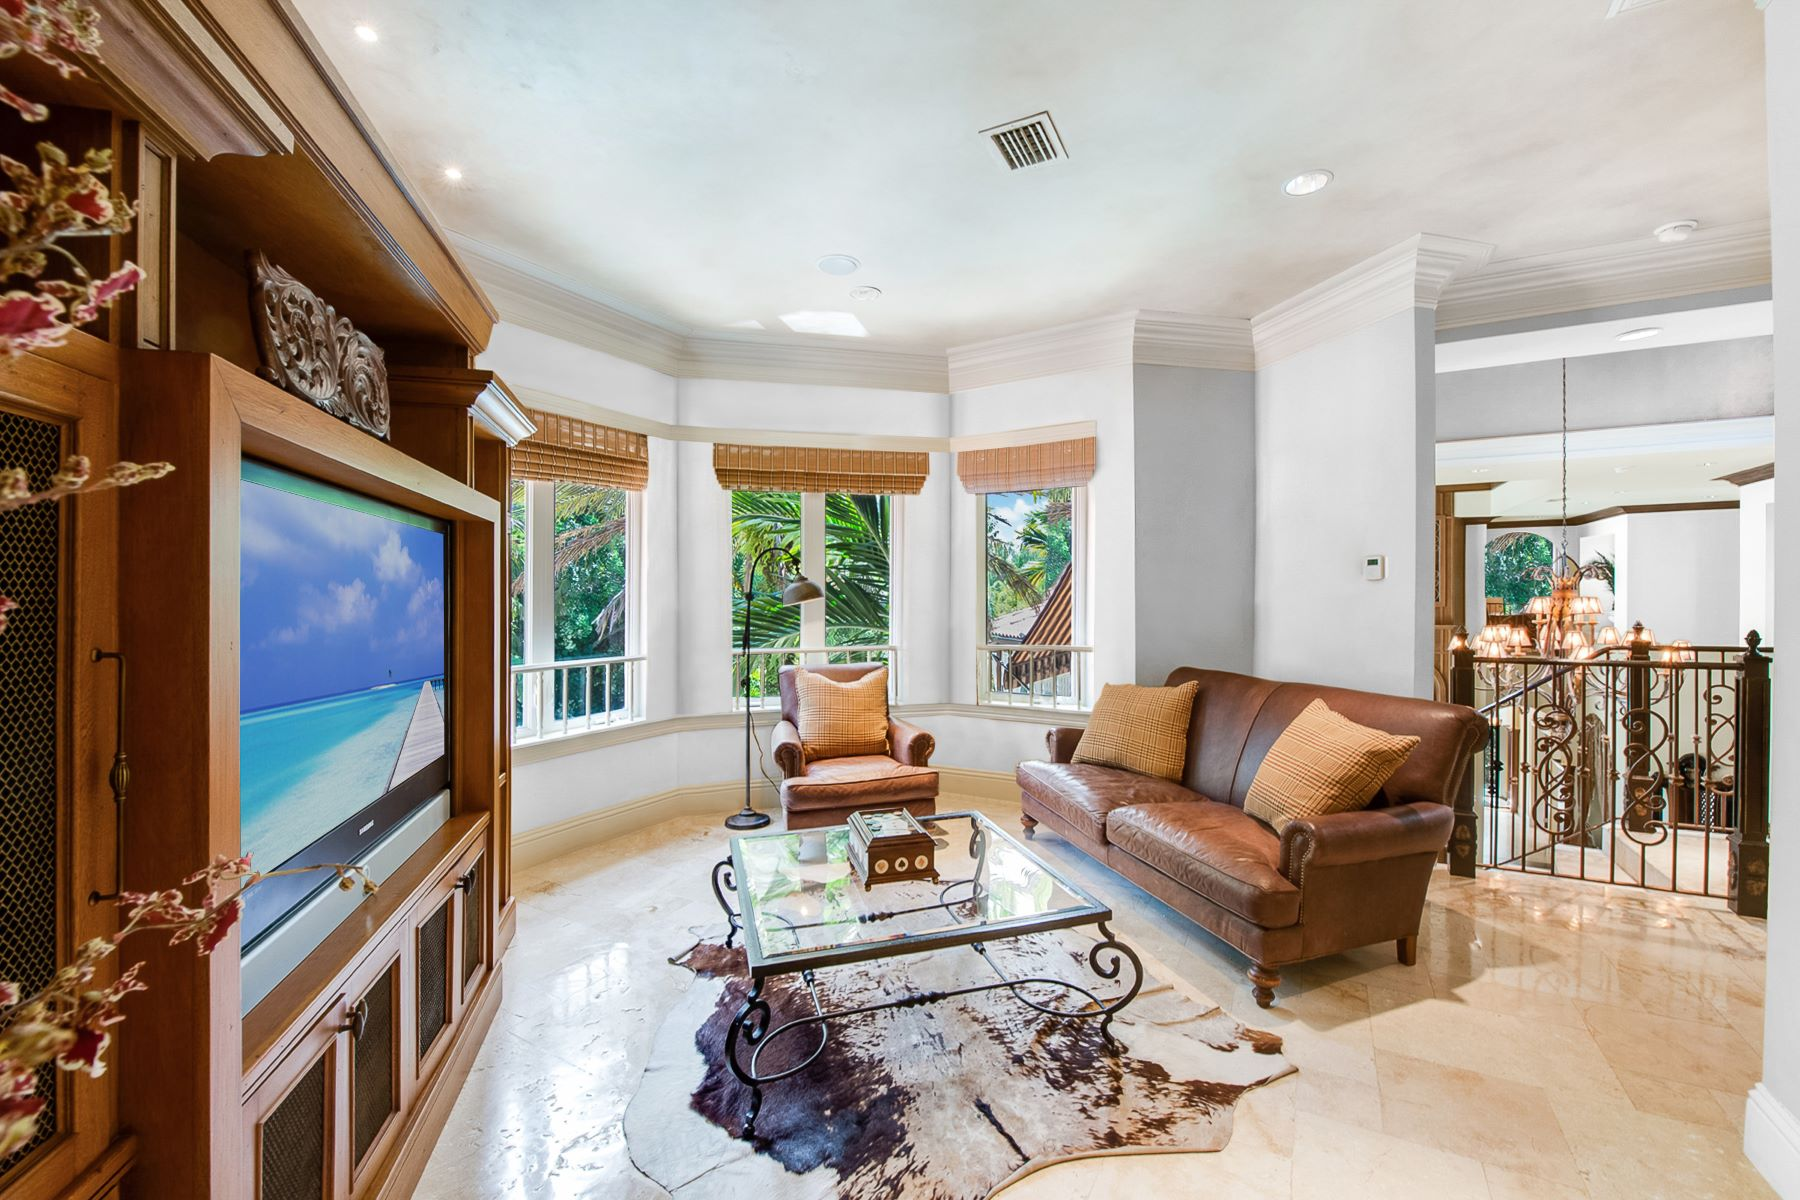 Additional photo for property listing at 10801 Sw 69th Ave 10801 Sw 69th Ave Miami, Florida 33156 United States